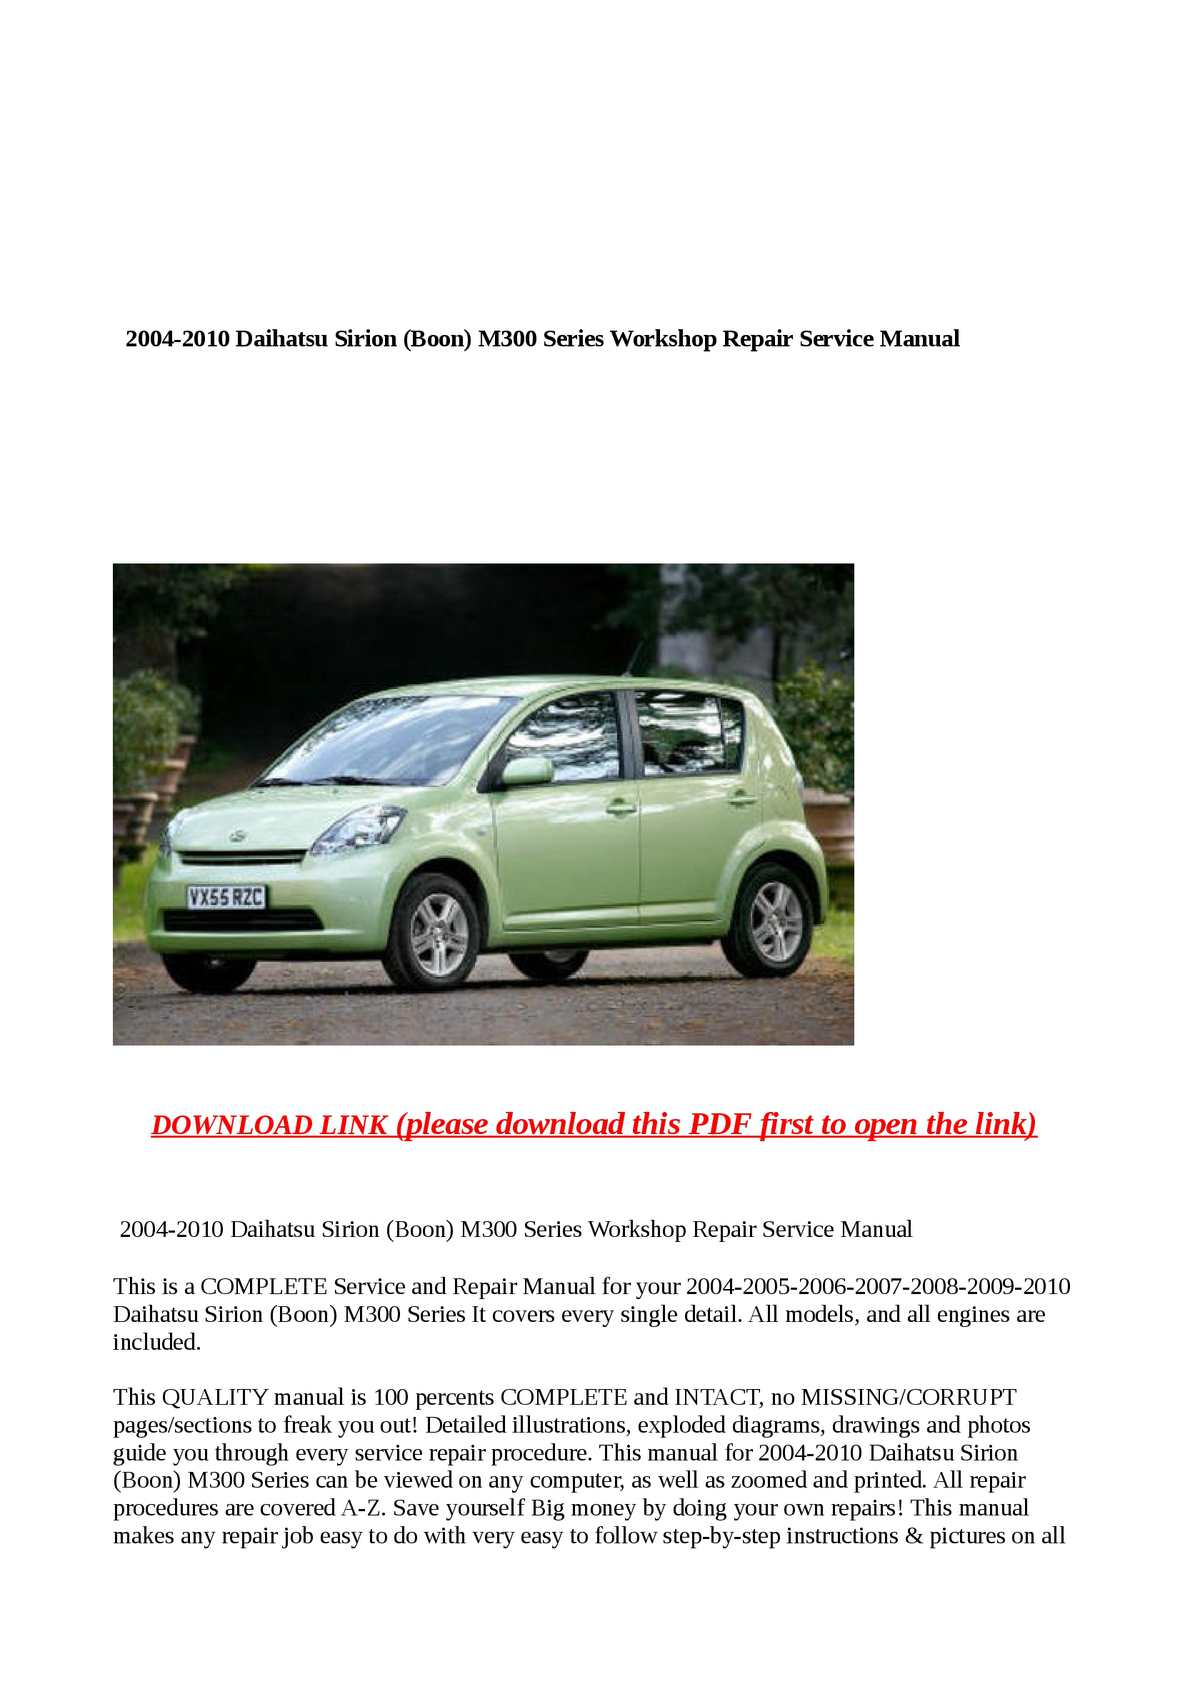 hight resolution of 2004 daihatsu sirion wiring diagram wiring diagram wiring diagram daihatsu storia